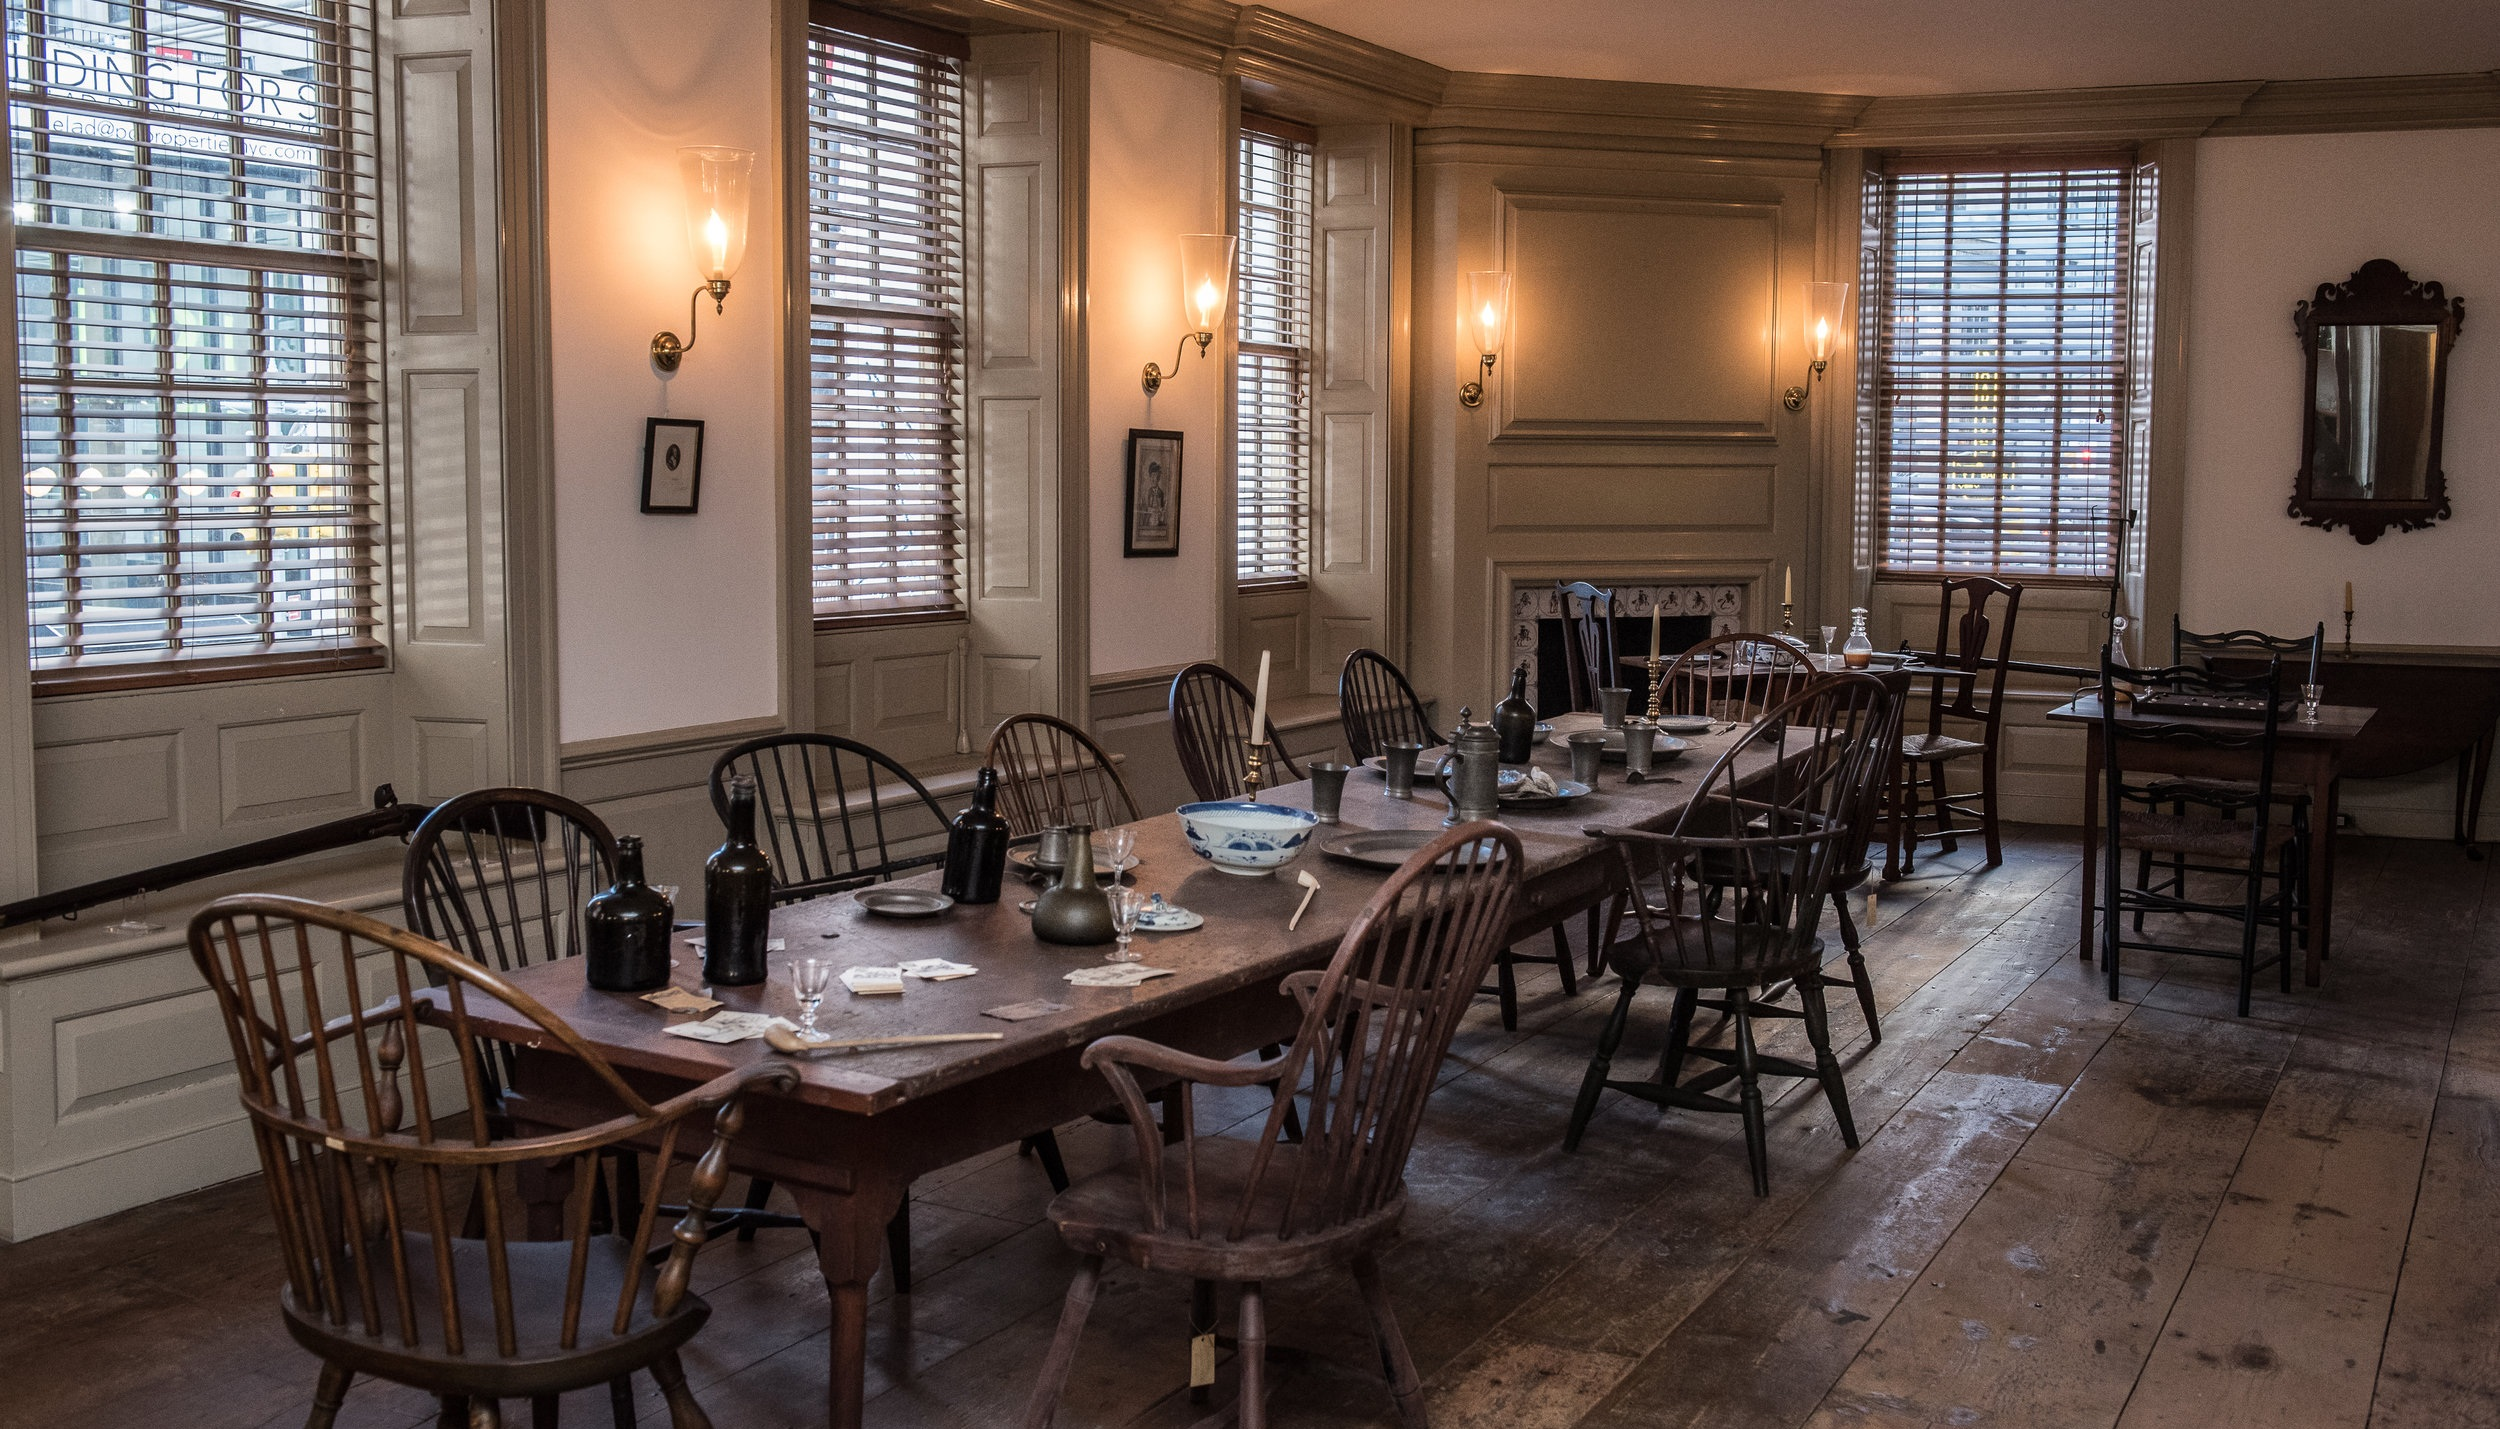 Drink to history - and discover New York City's revolutionary past